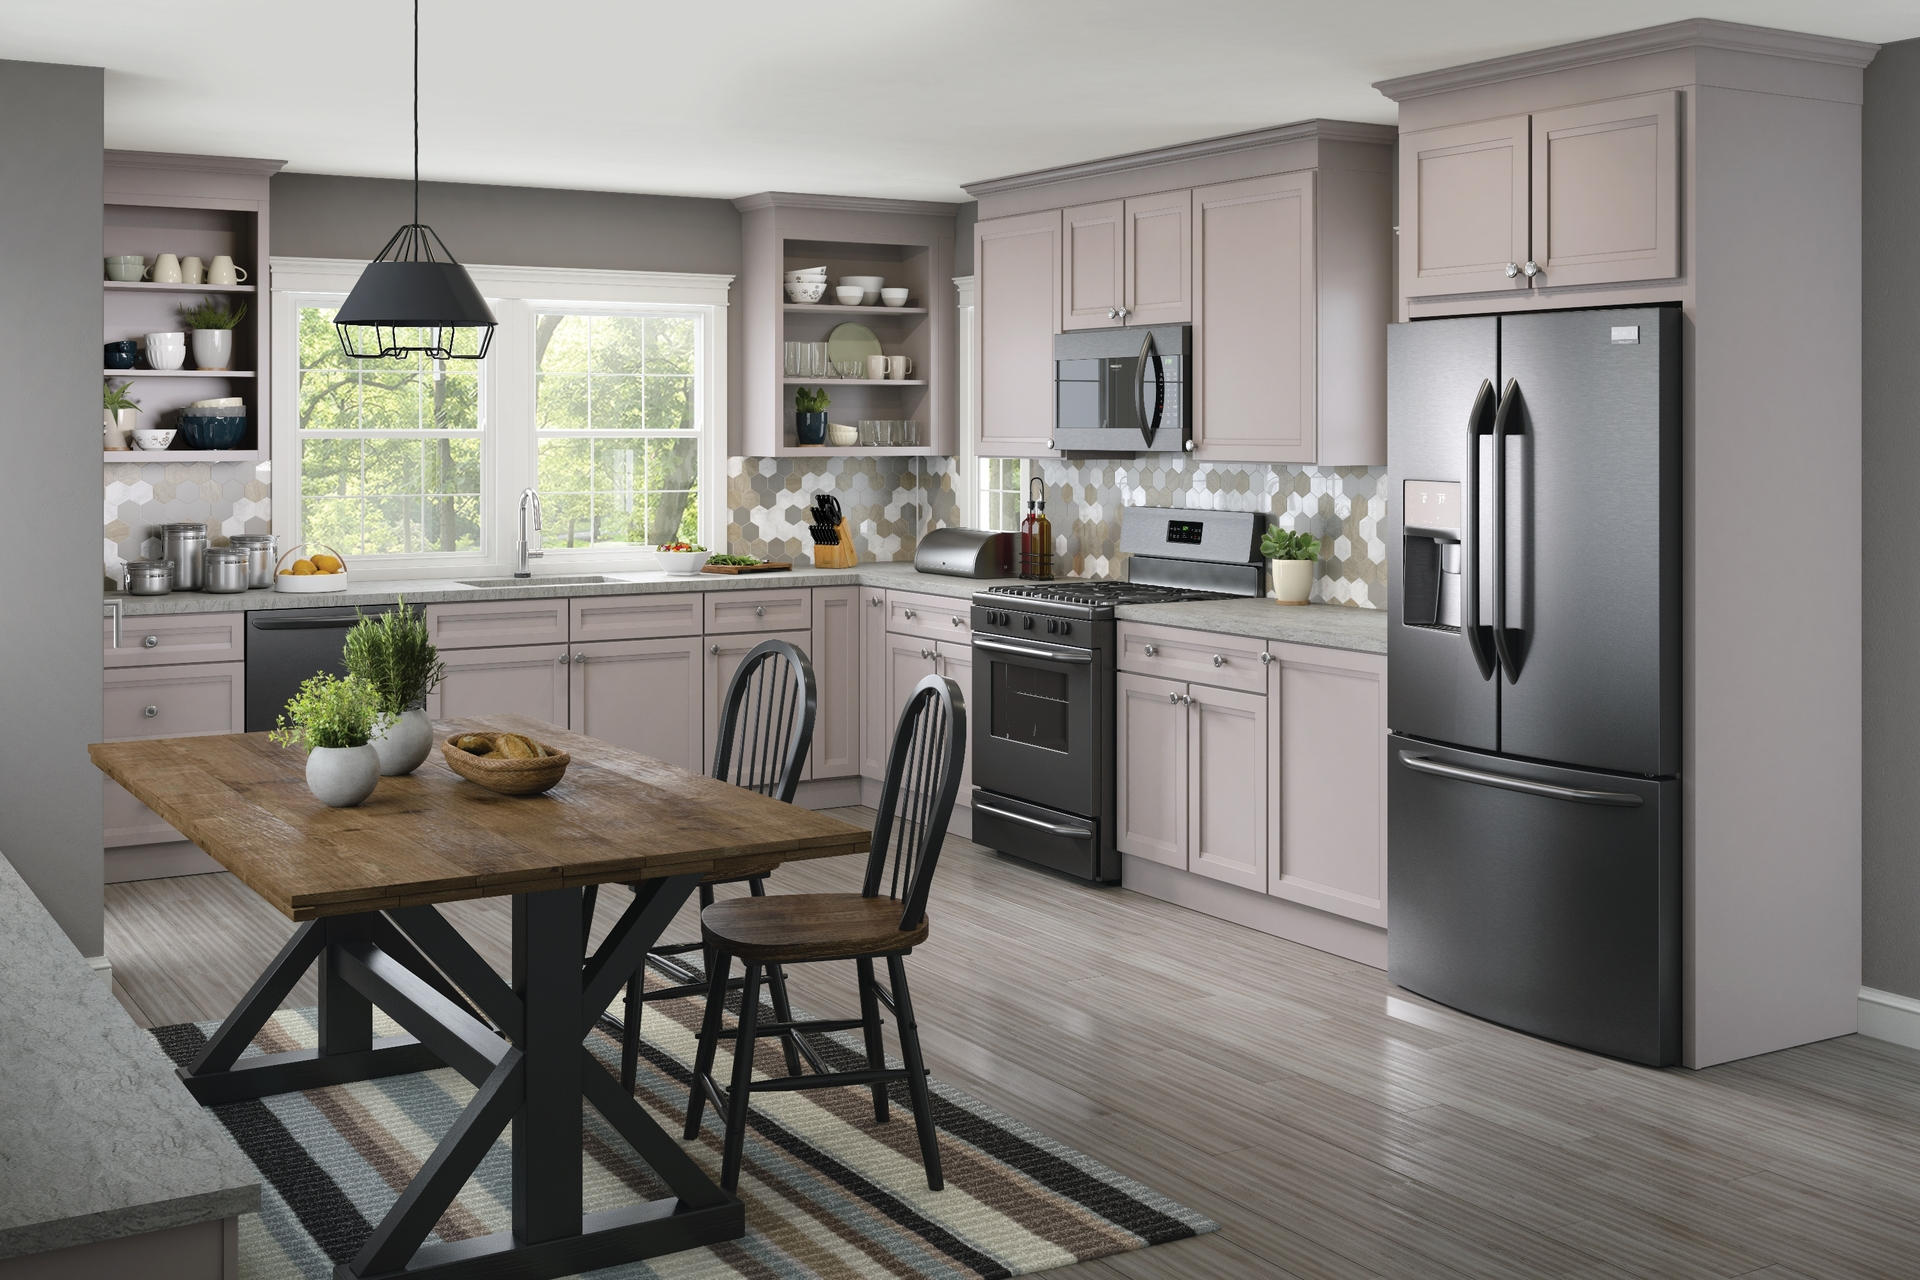 Charmant Cardell Cabinetry